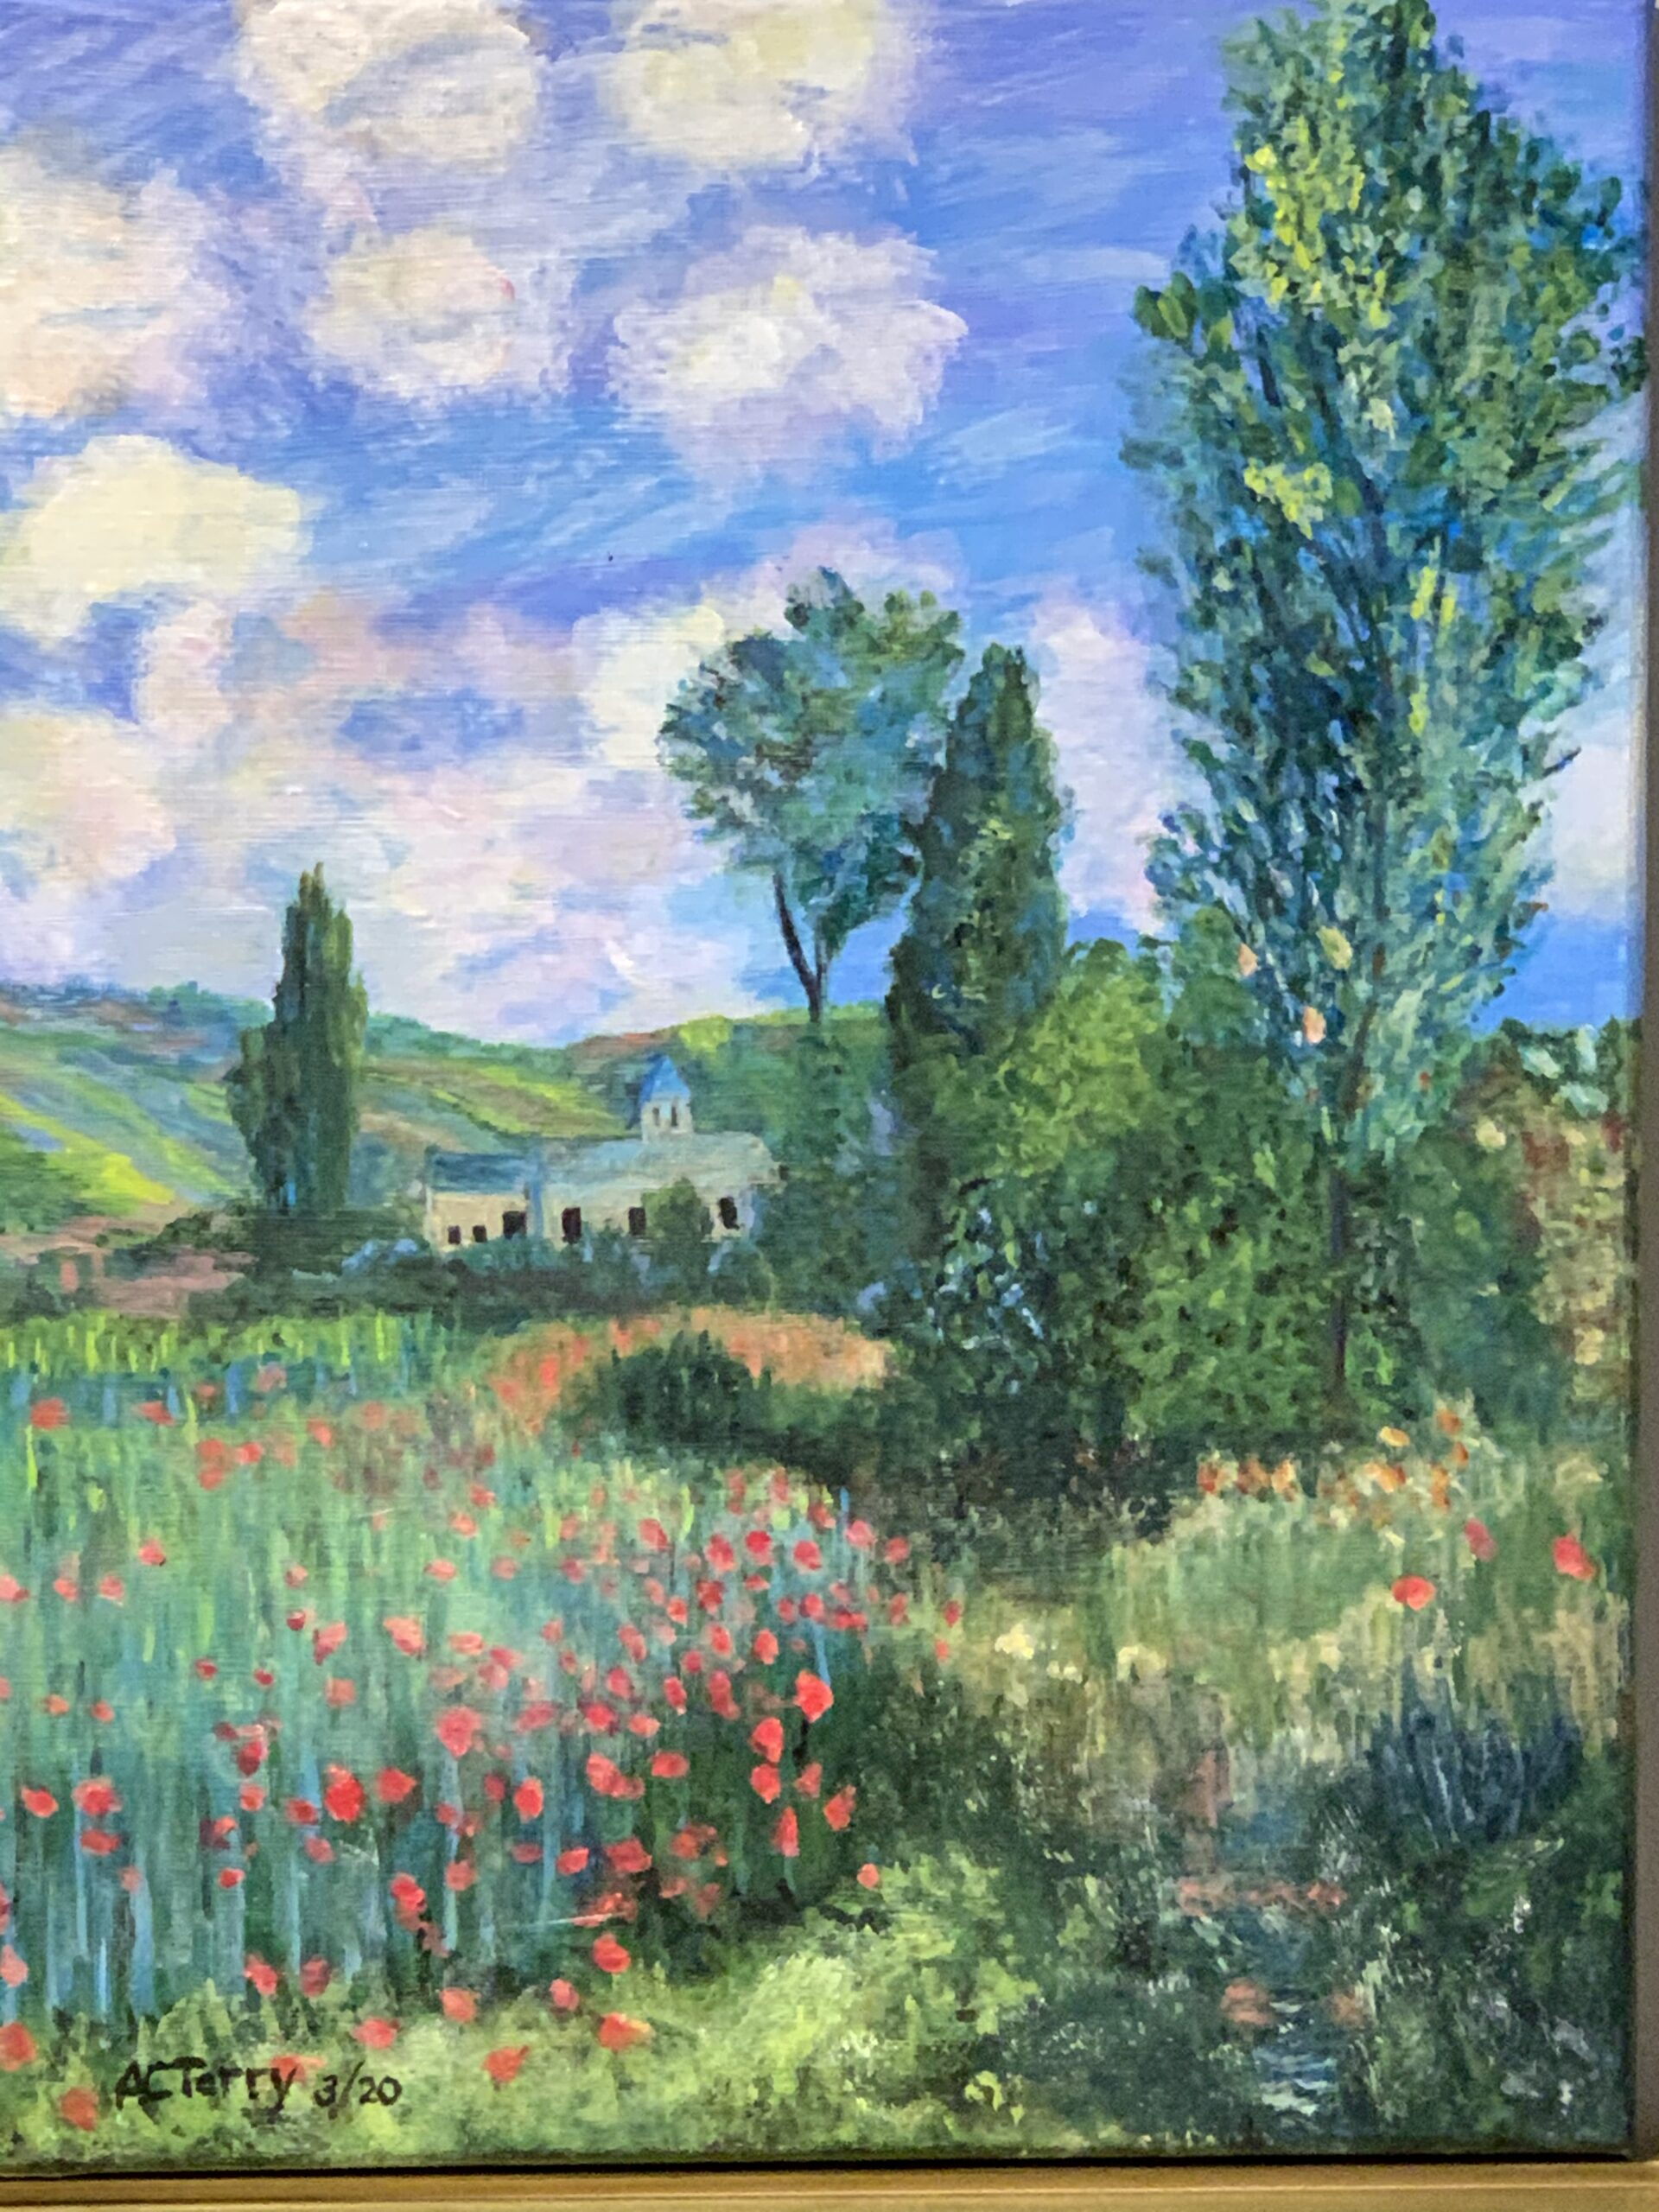 Painting by Al Terry Monet's Lane in the Poppy Fields Ile Saint Martin cropped